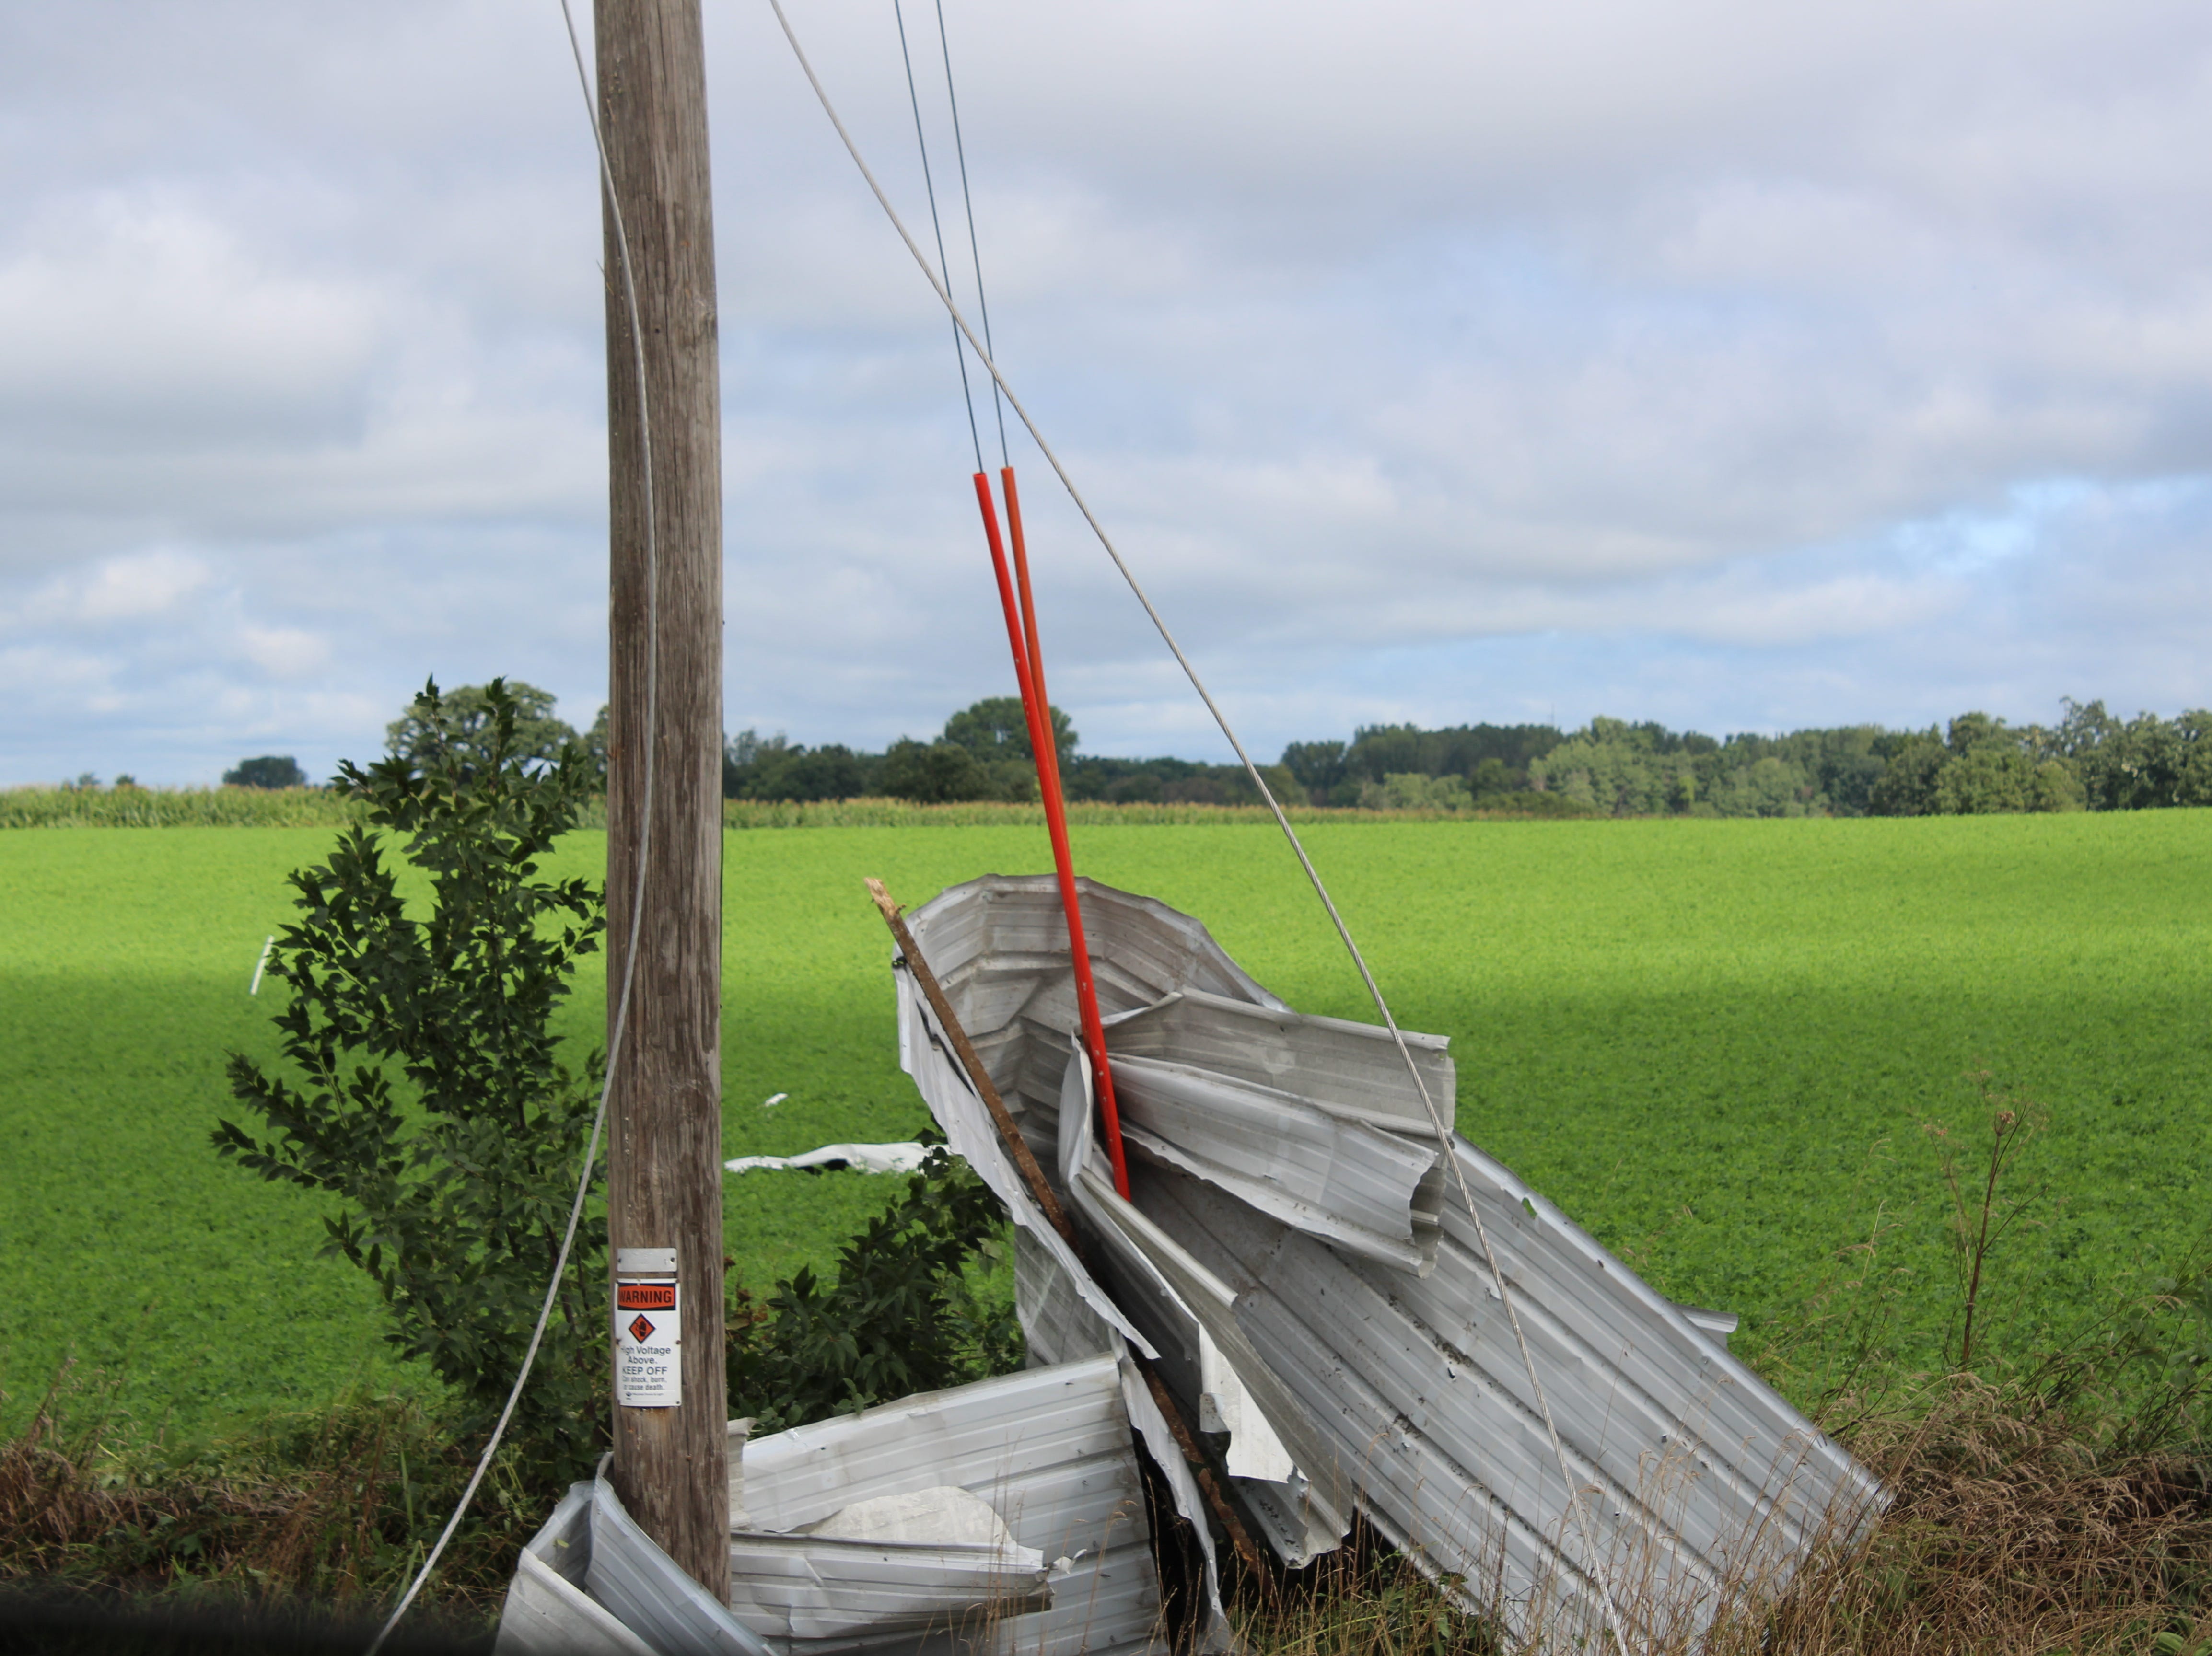 Sheet metal is bent around a utility pole across the road from the Wetzel farm.